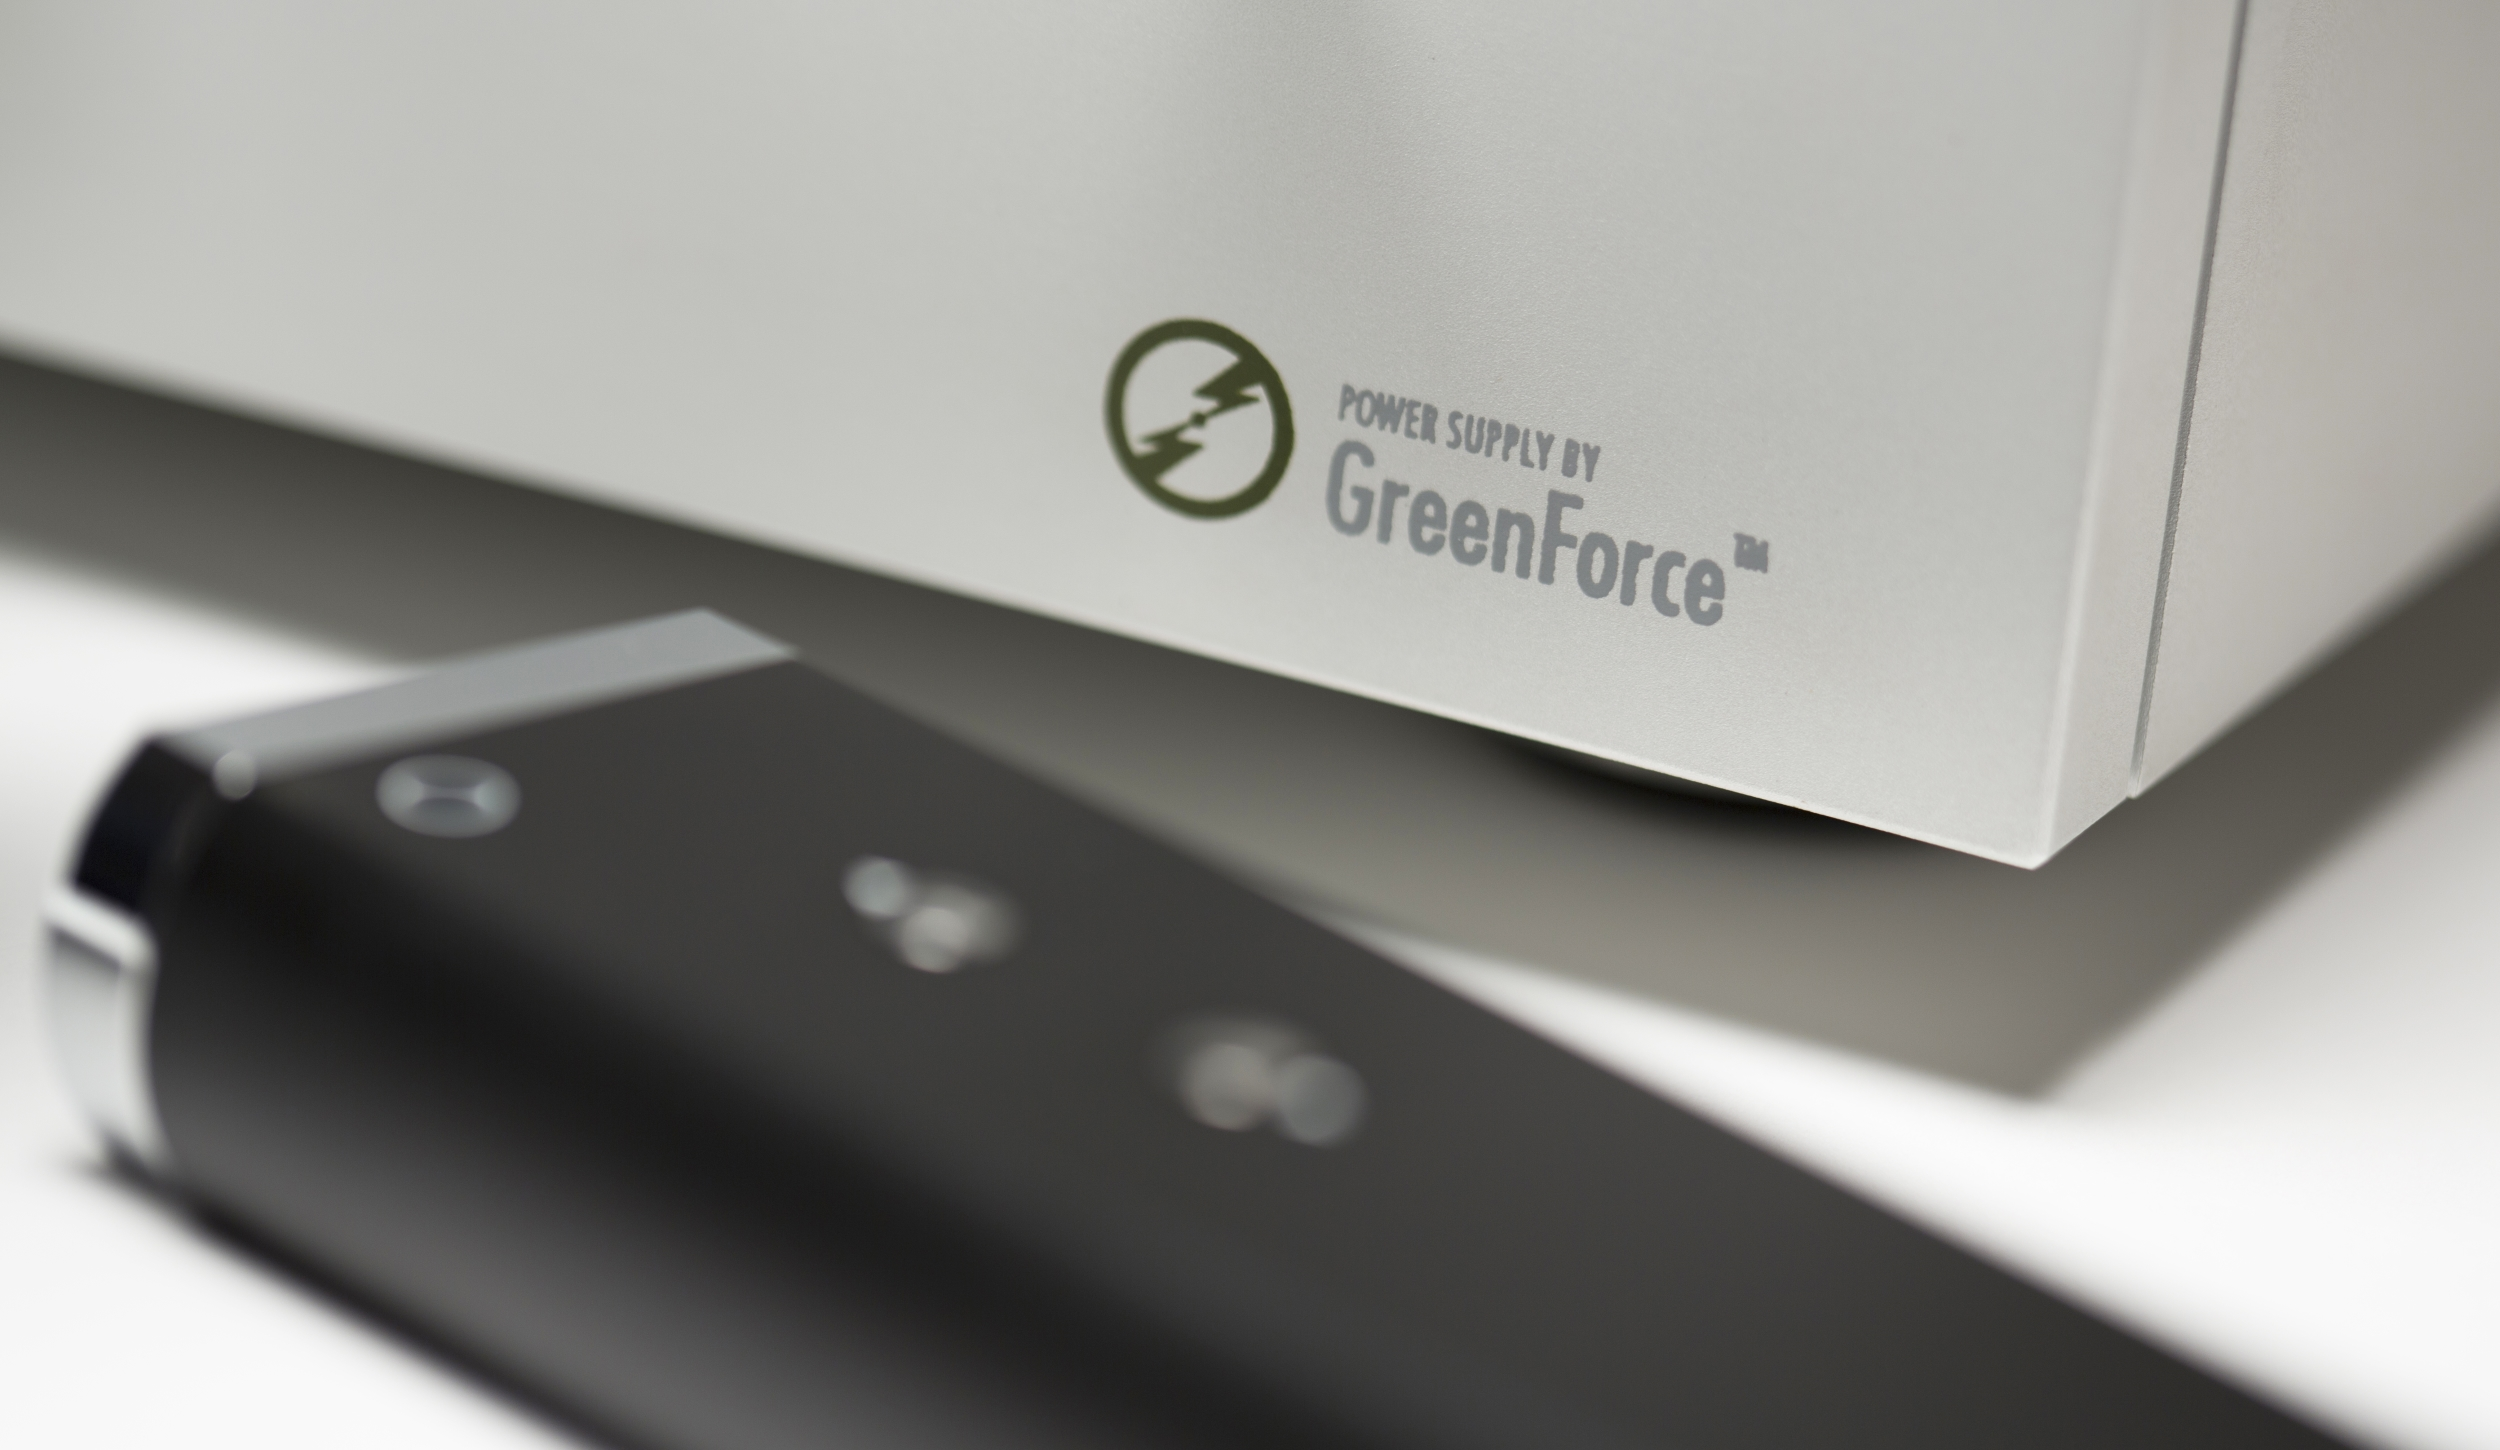 GreenForce power supply